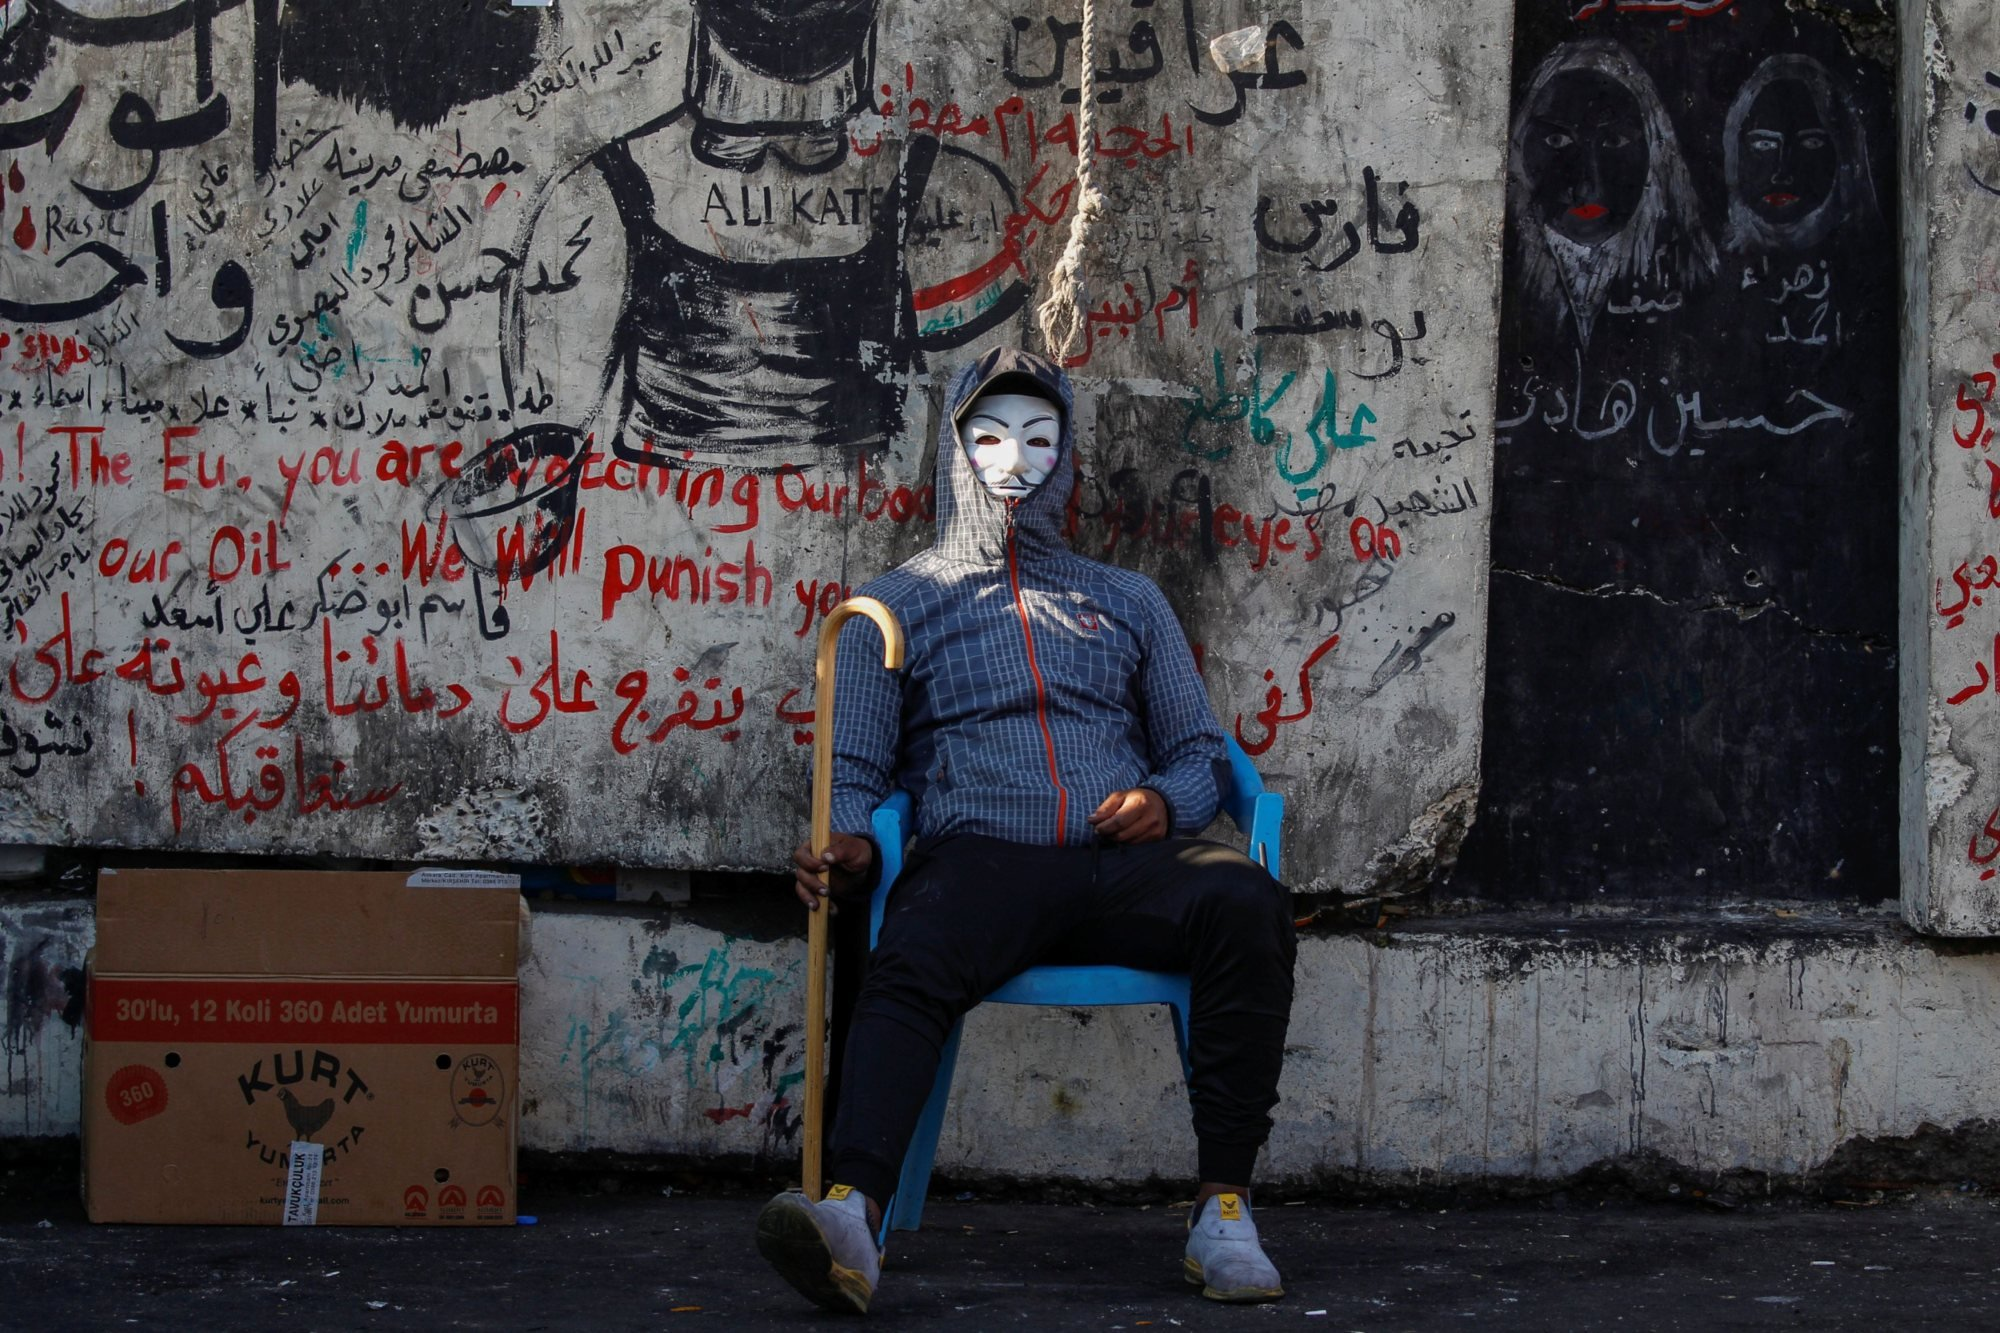 An Iraqi demonstrator sits wearing a mask during the ongoing anti-government protests in Baghdad, Iraq on 22 November 2019 (Reuters)